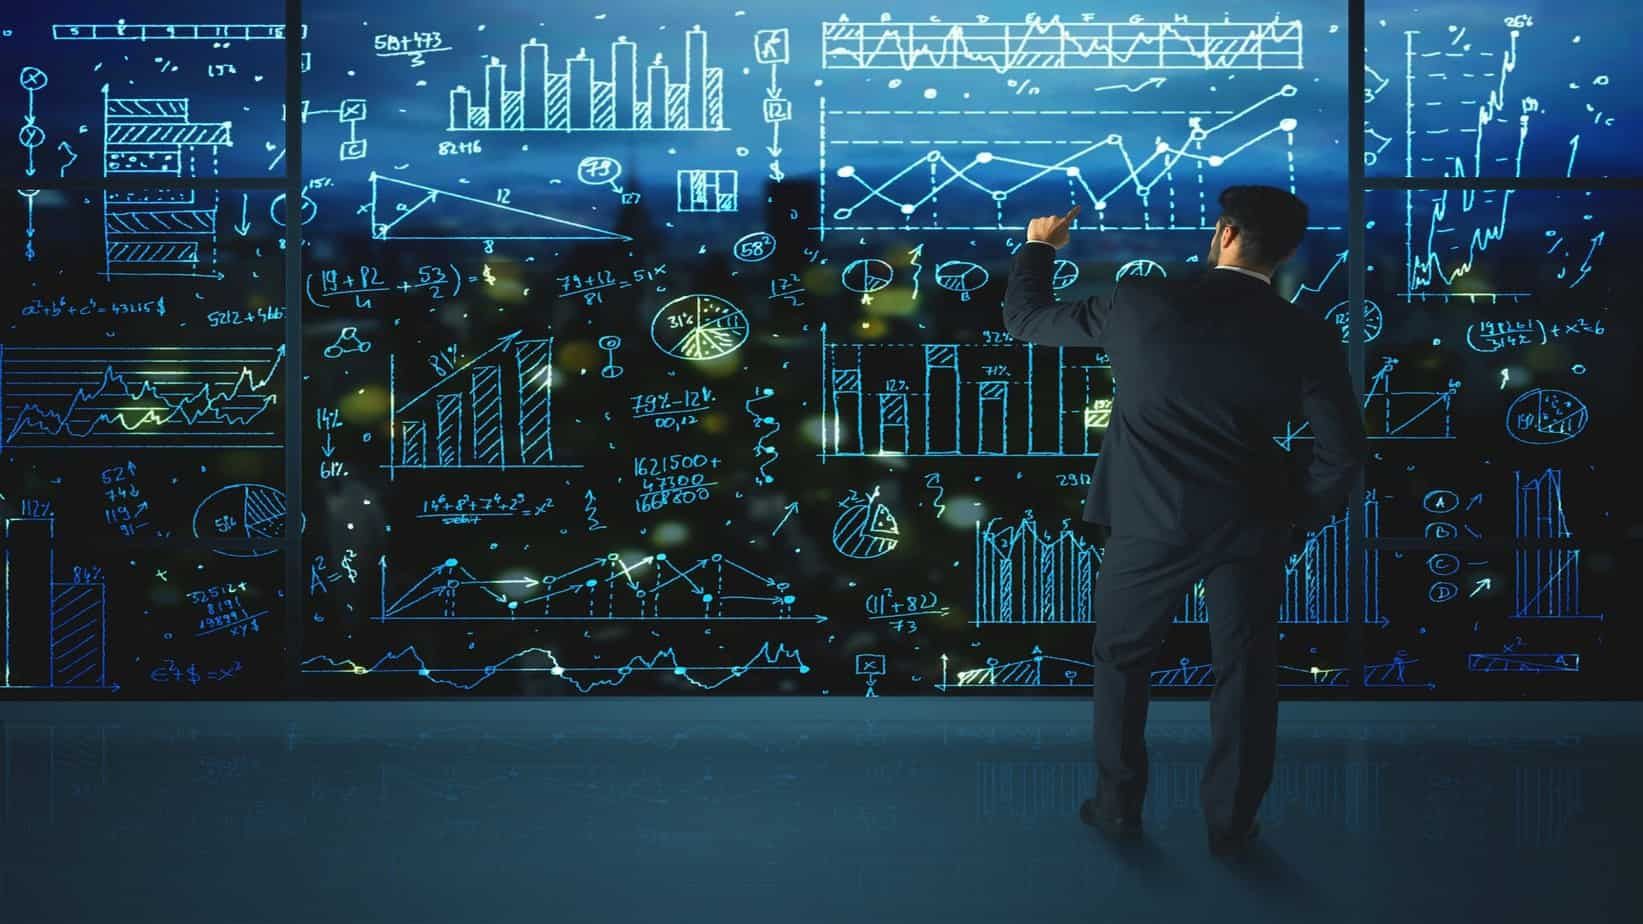 10 Ways to apply data science in marketing campaigns for better ROI